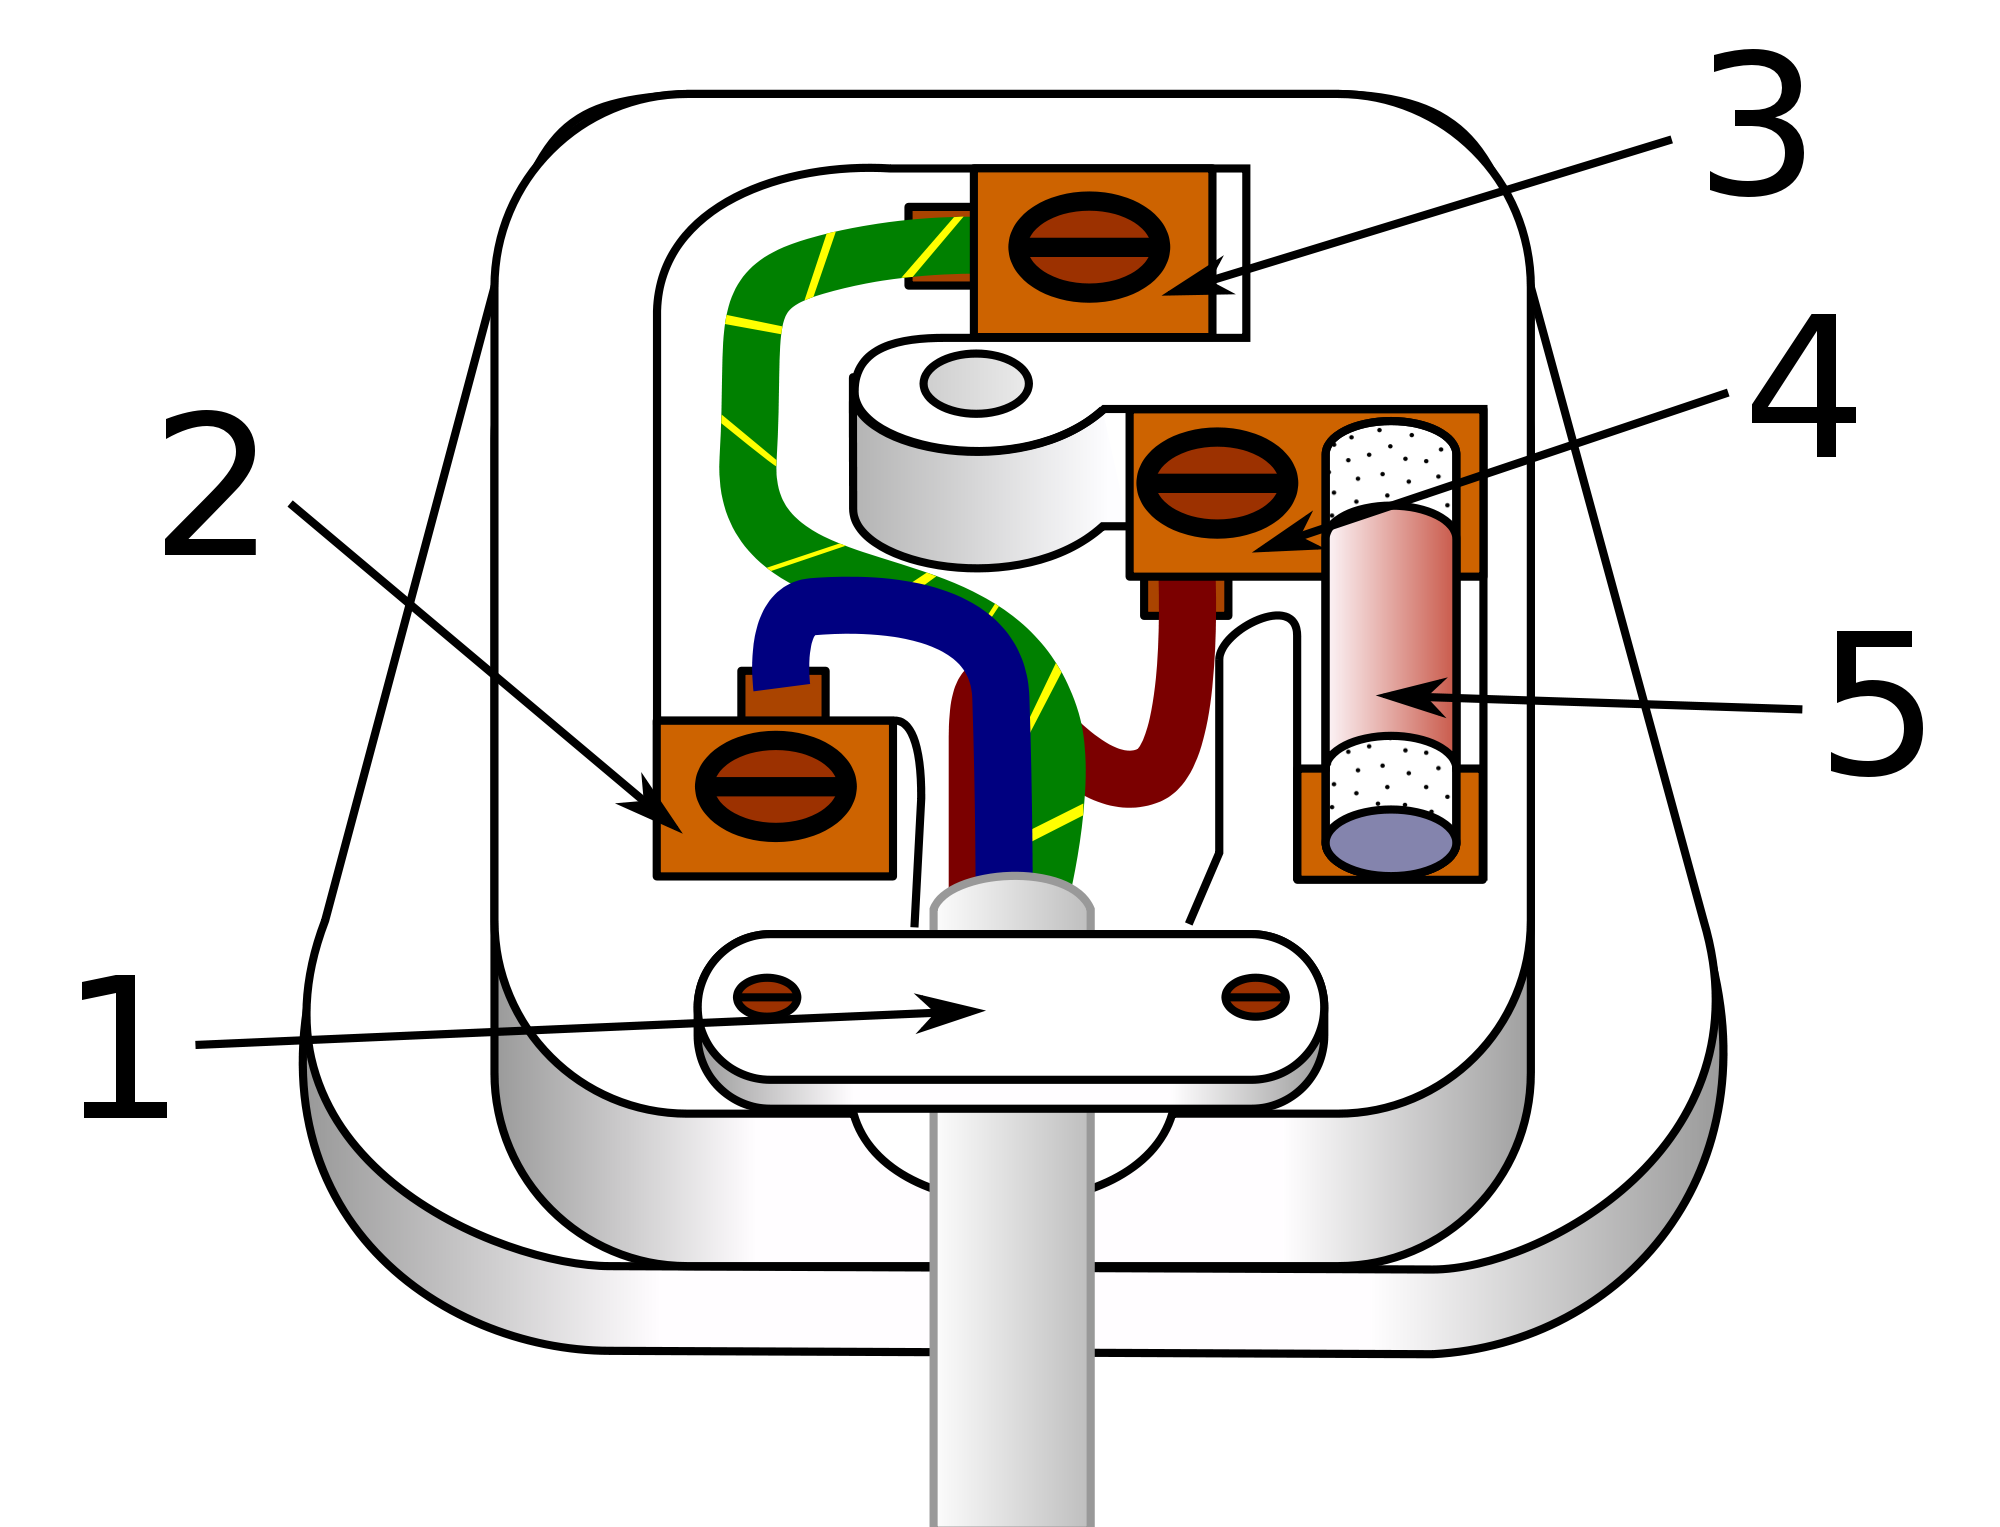 Uk Plug Wiring Diagram Schema Img Power Over Ethernet Interface Schematic Socket Data Mains